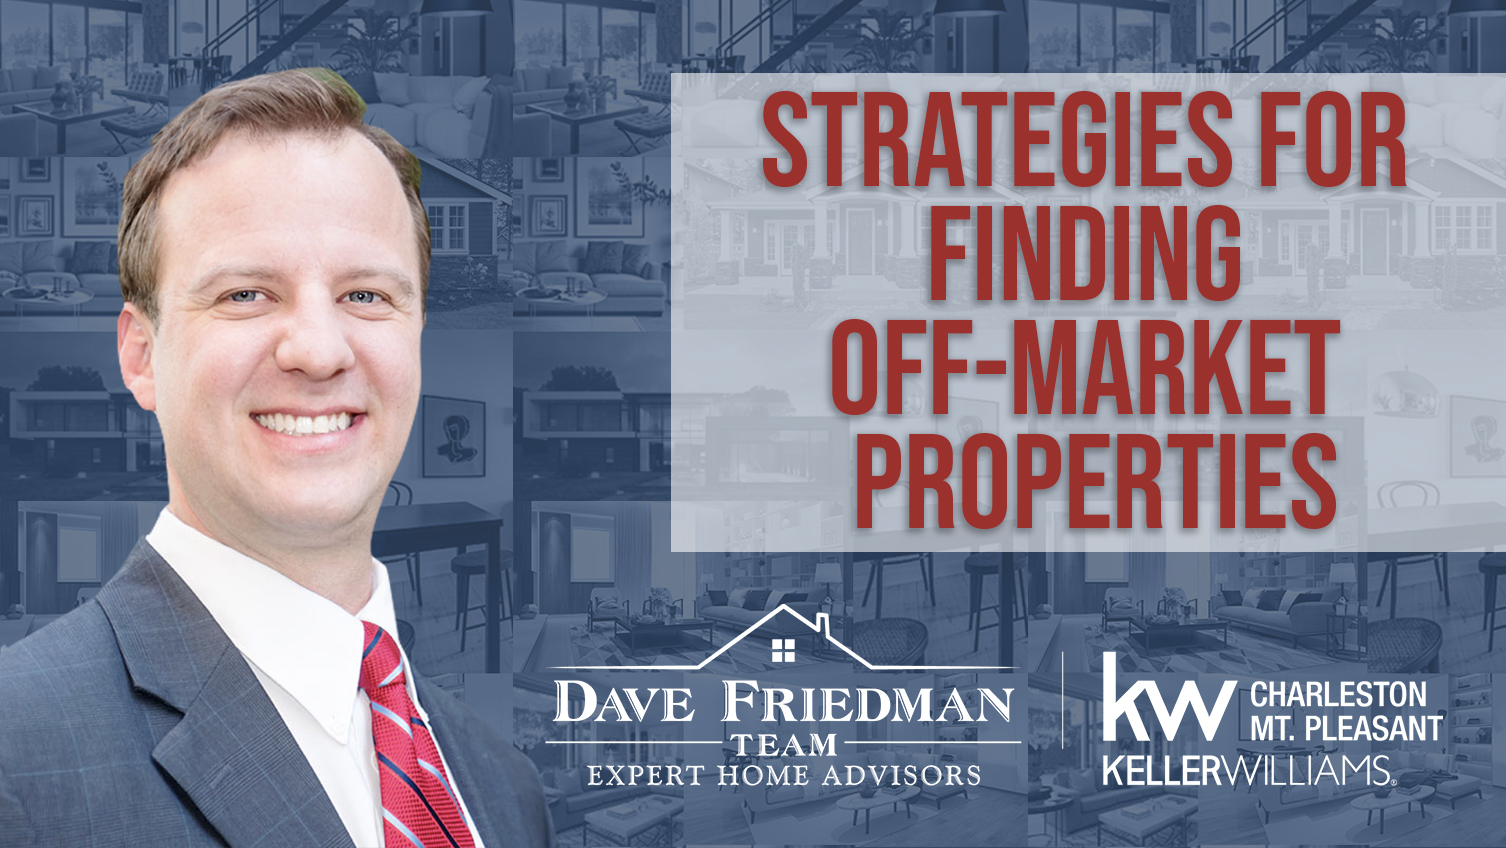 Q: How Can You Find Off-Market Properties?